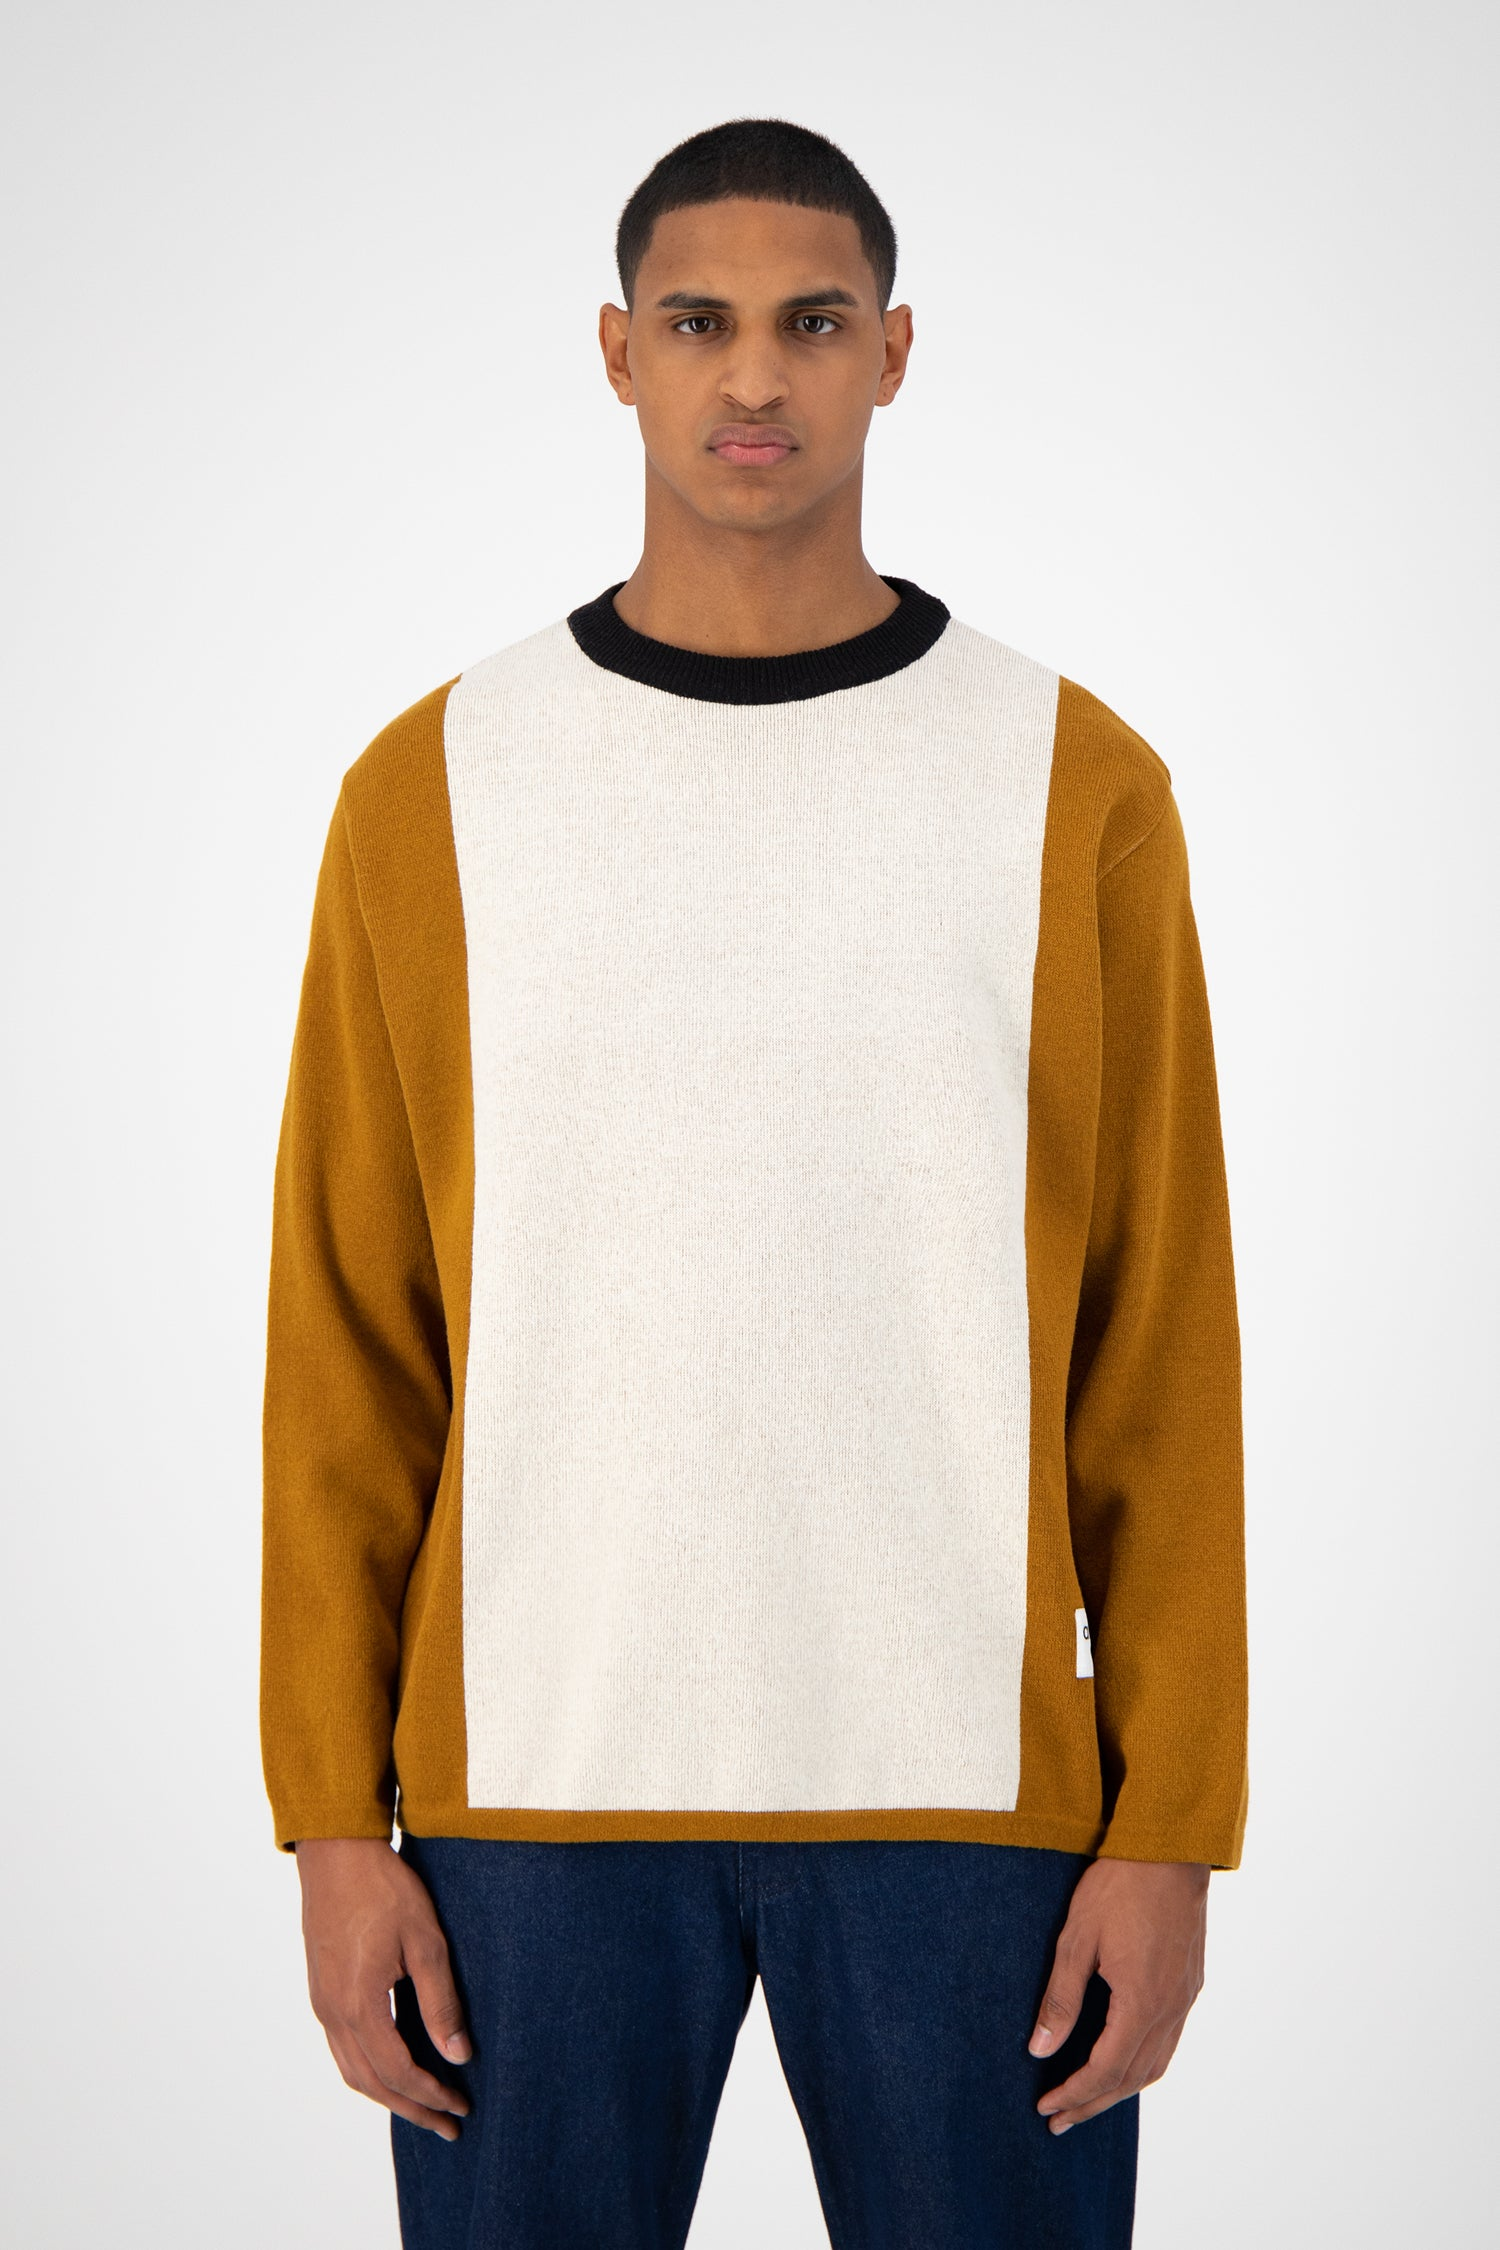 Kahn Knitted Sweater - Brown/Cream